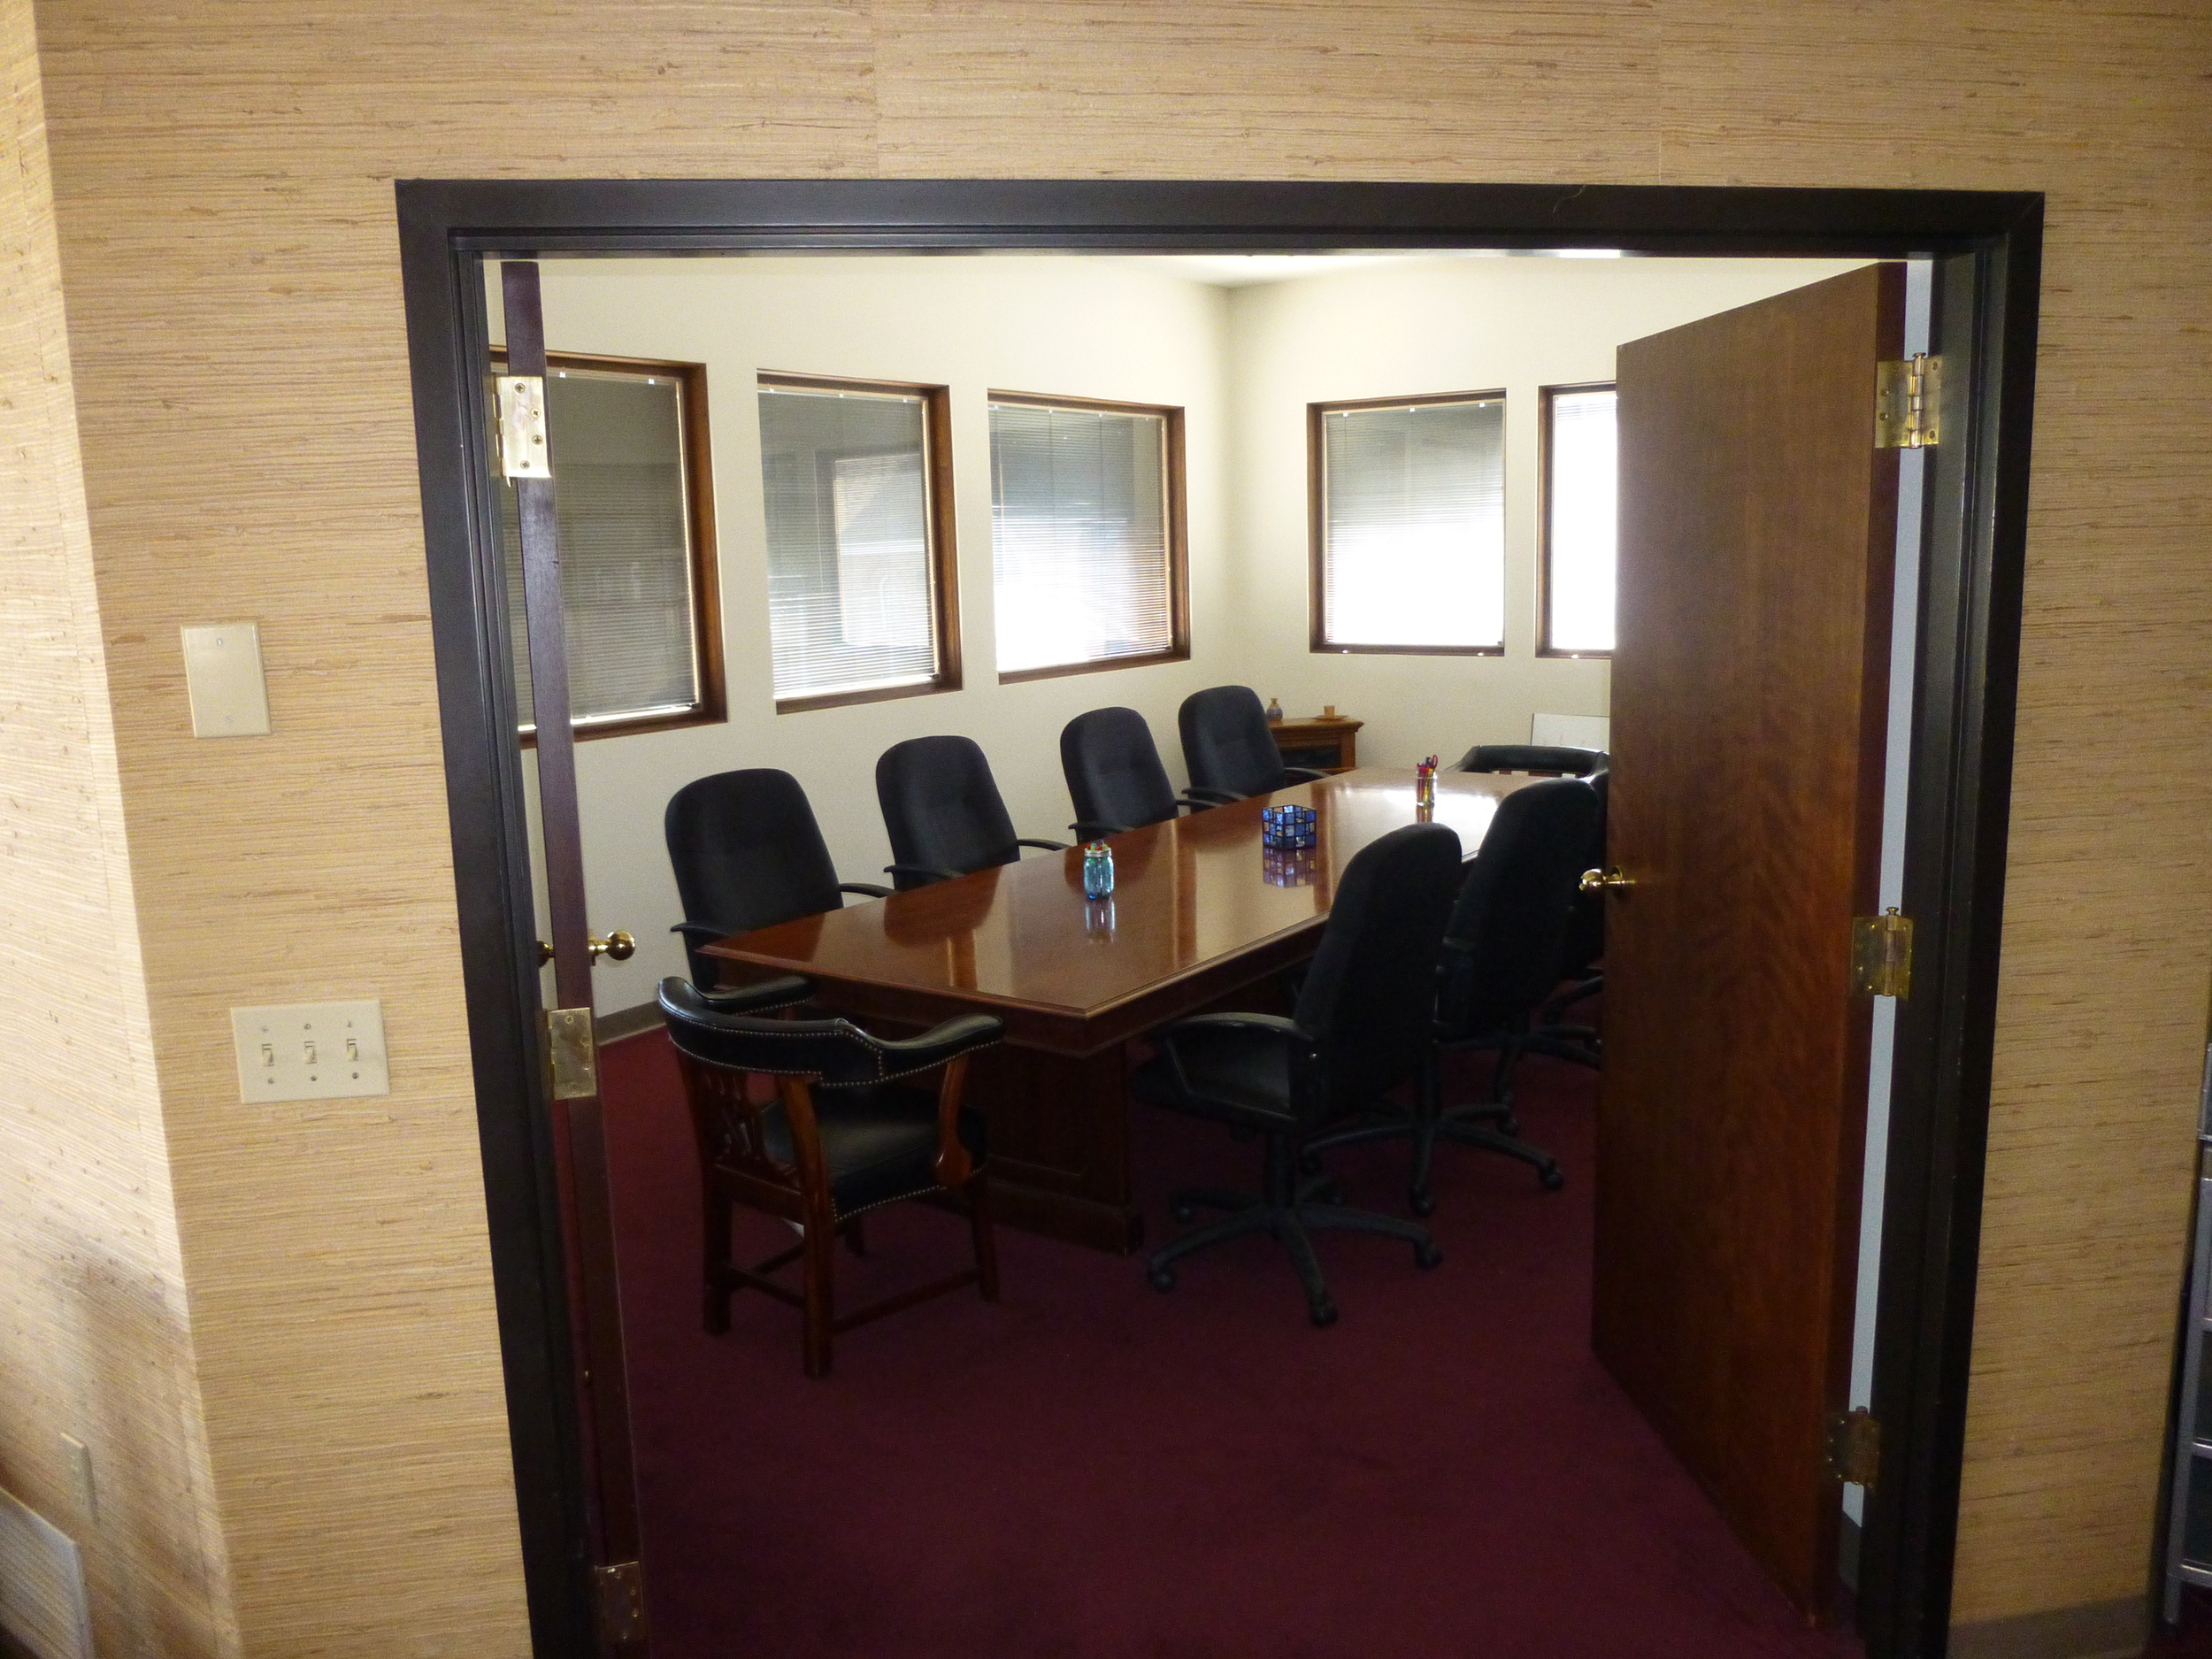 Outside the Board Room